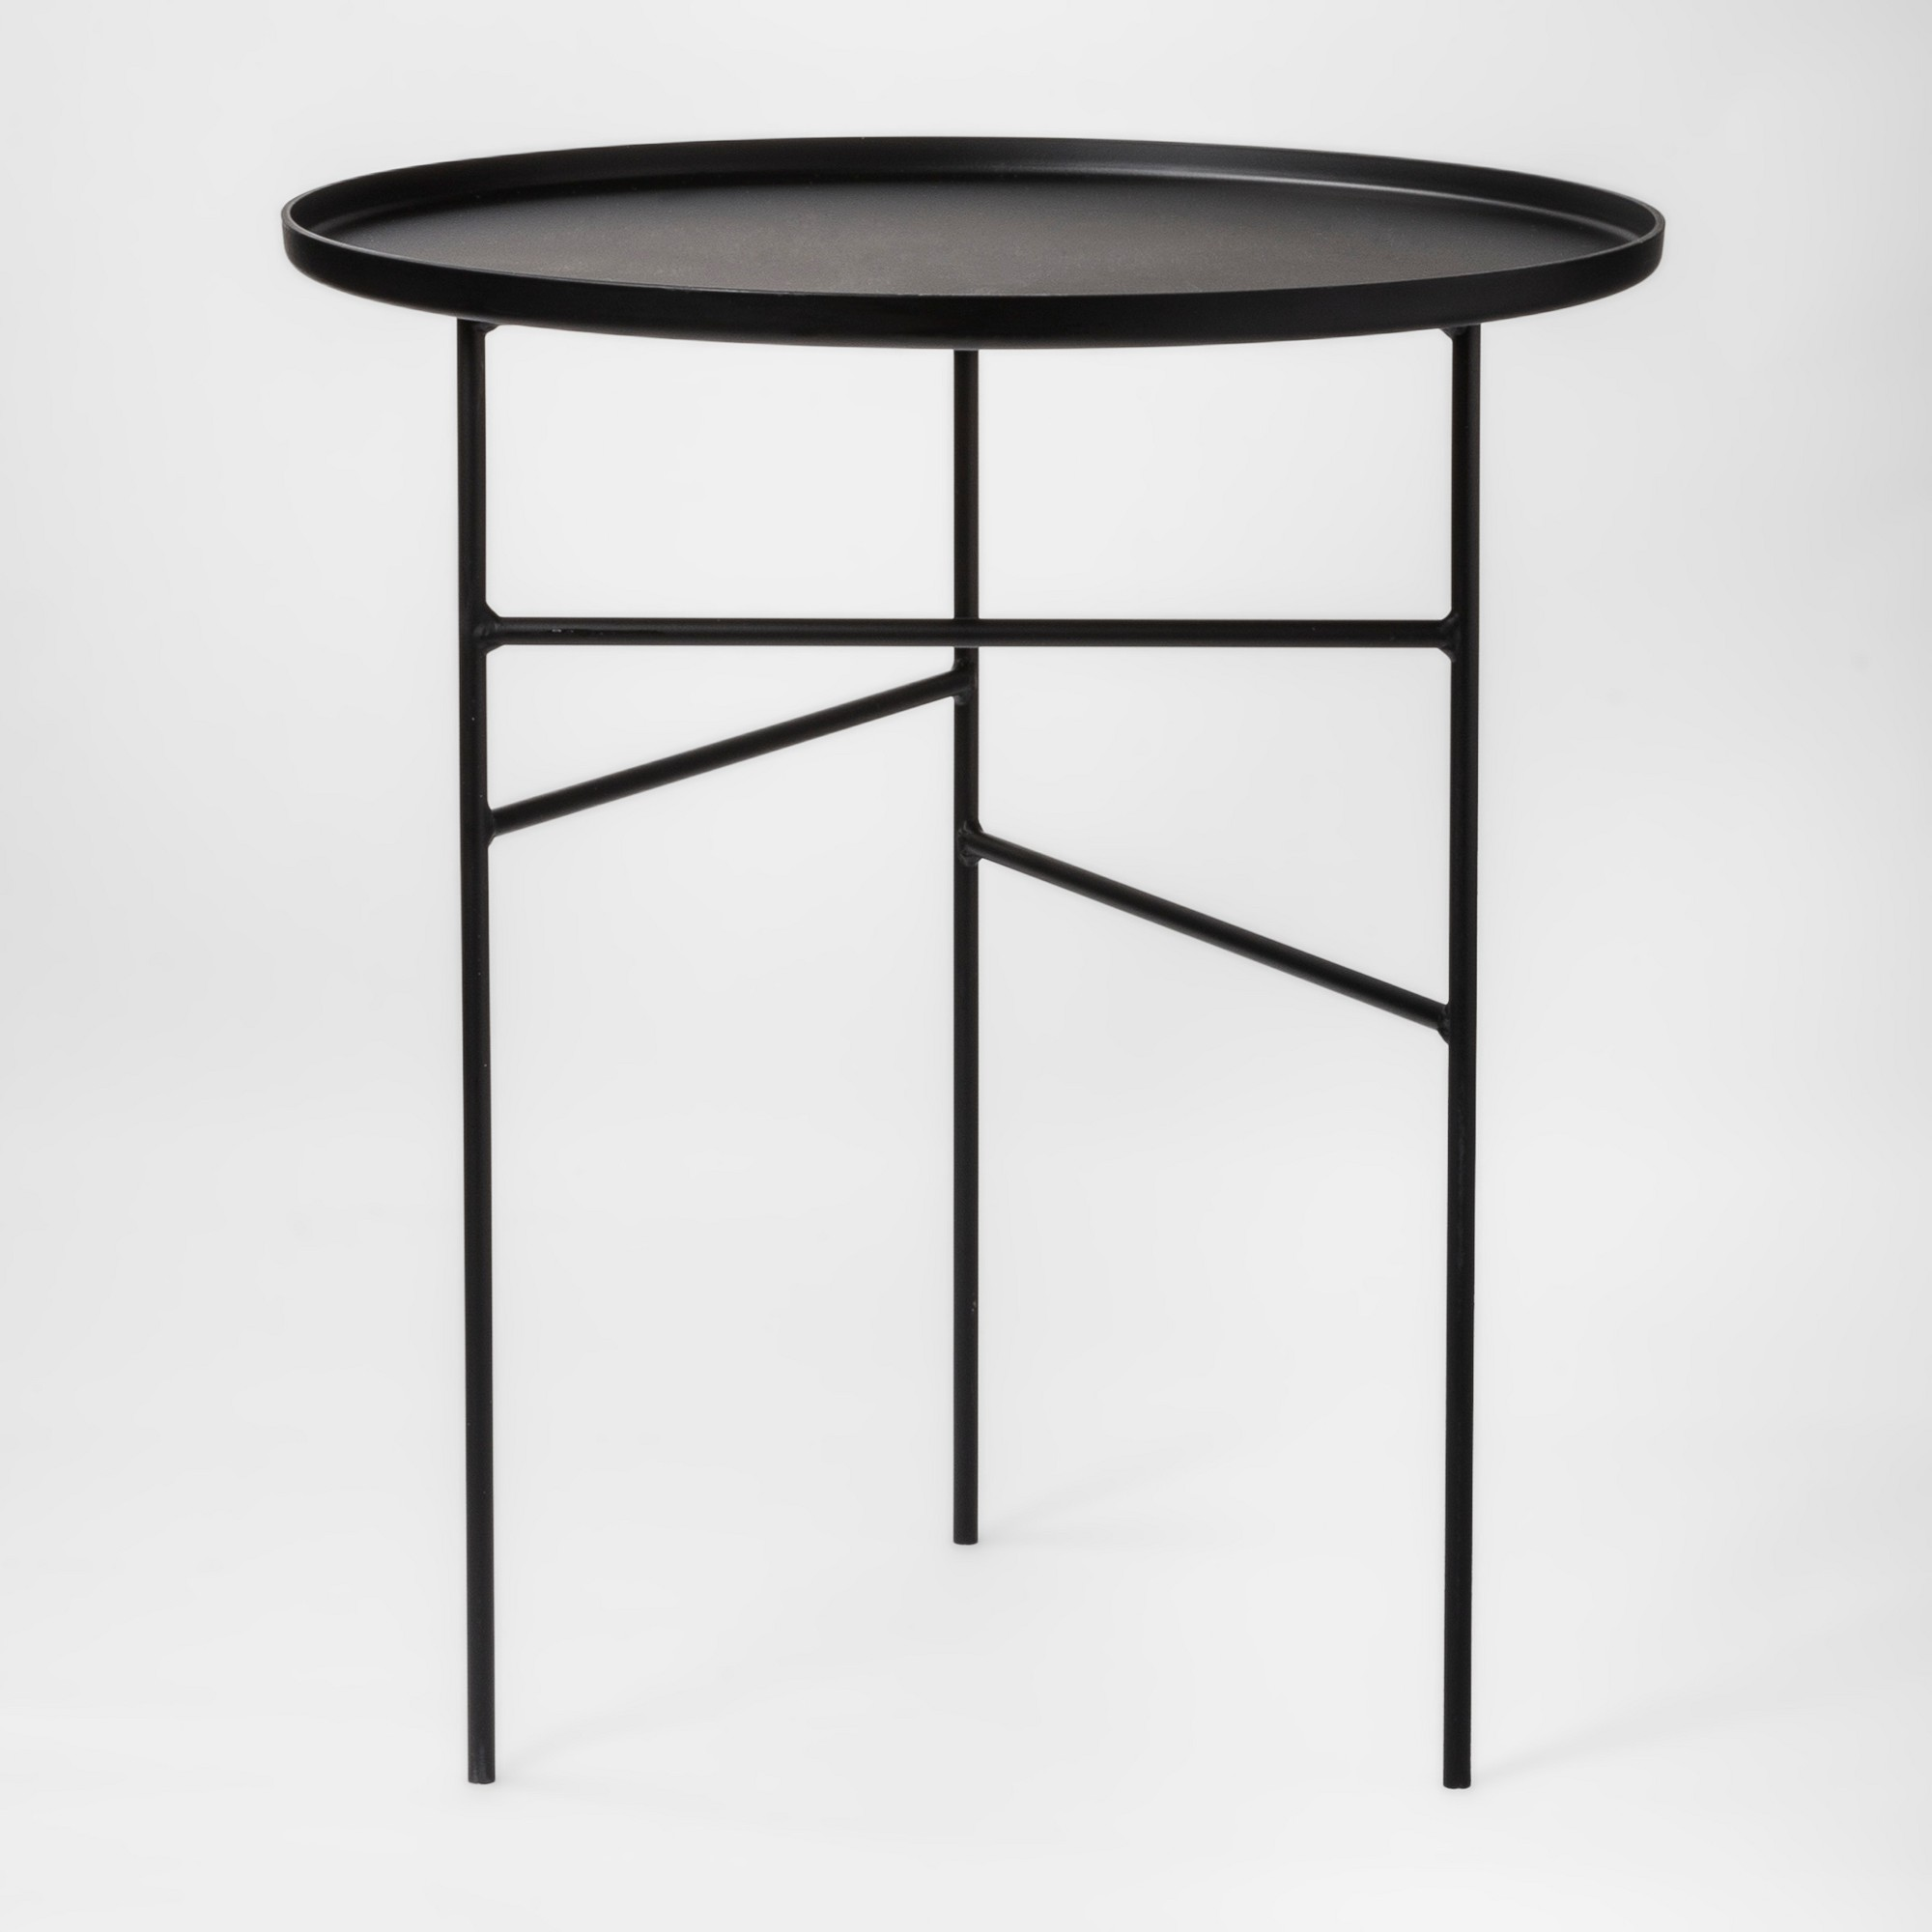 Elgin Accent Table Black Project 62 Metal Accent Table Round Metal Side Table Home Decor Sale